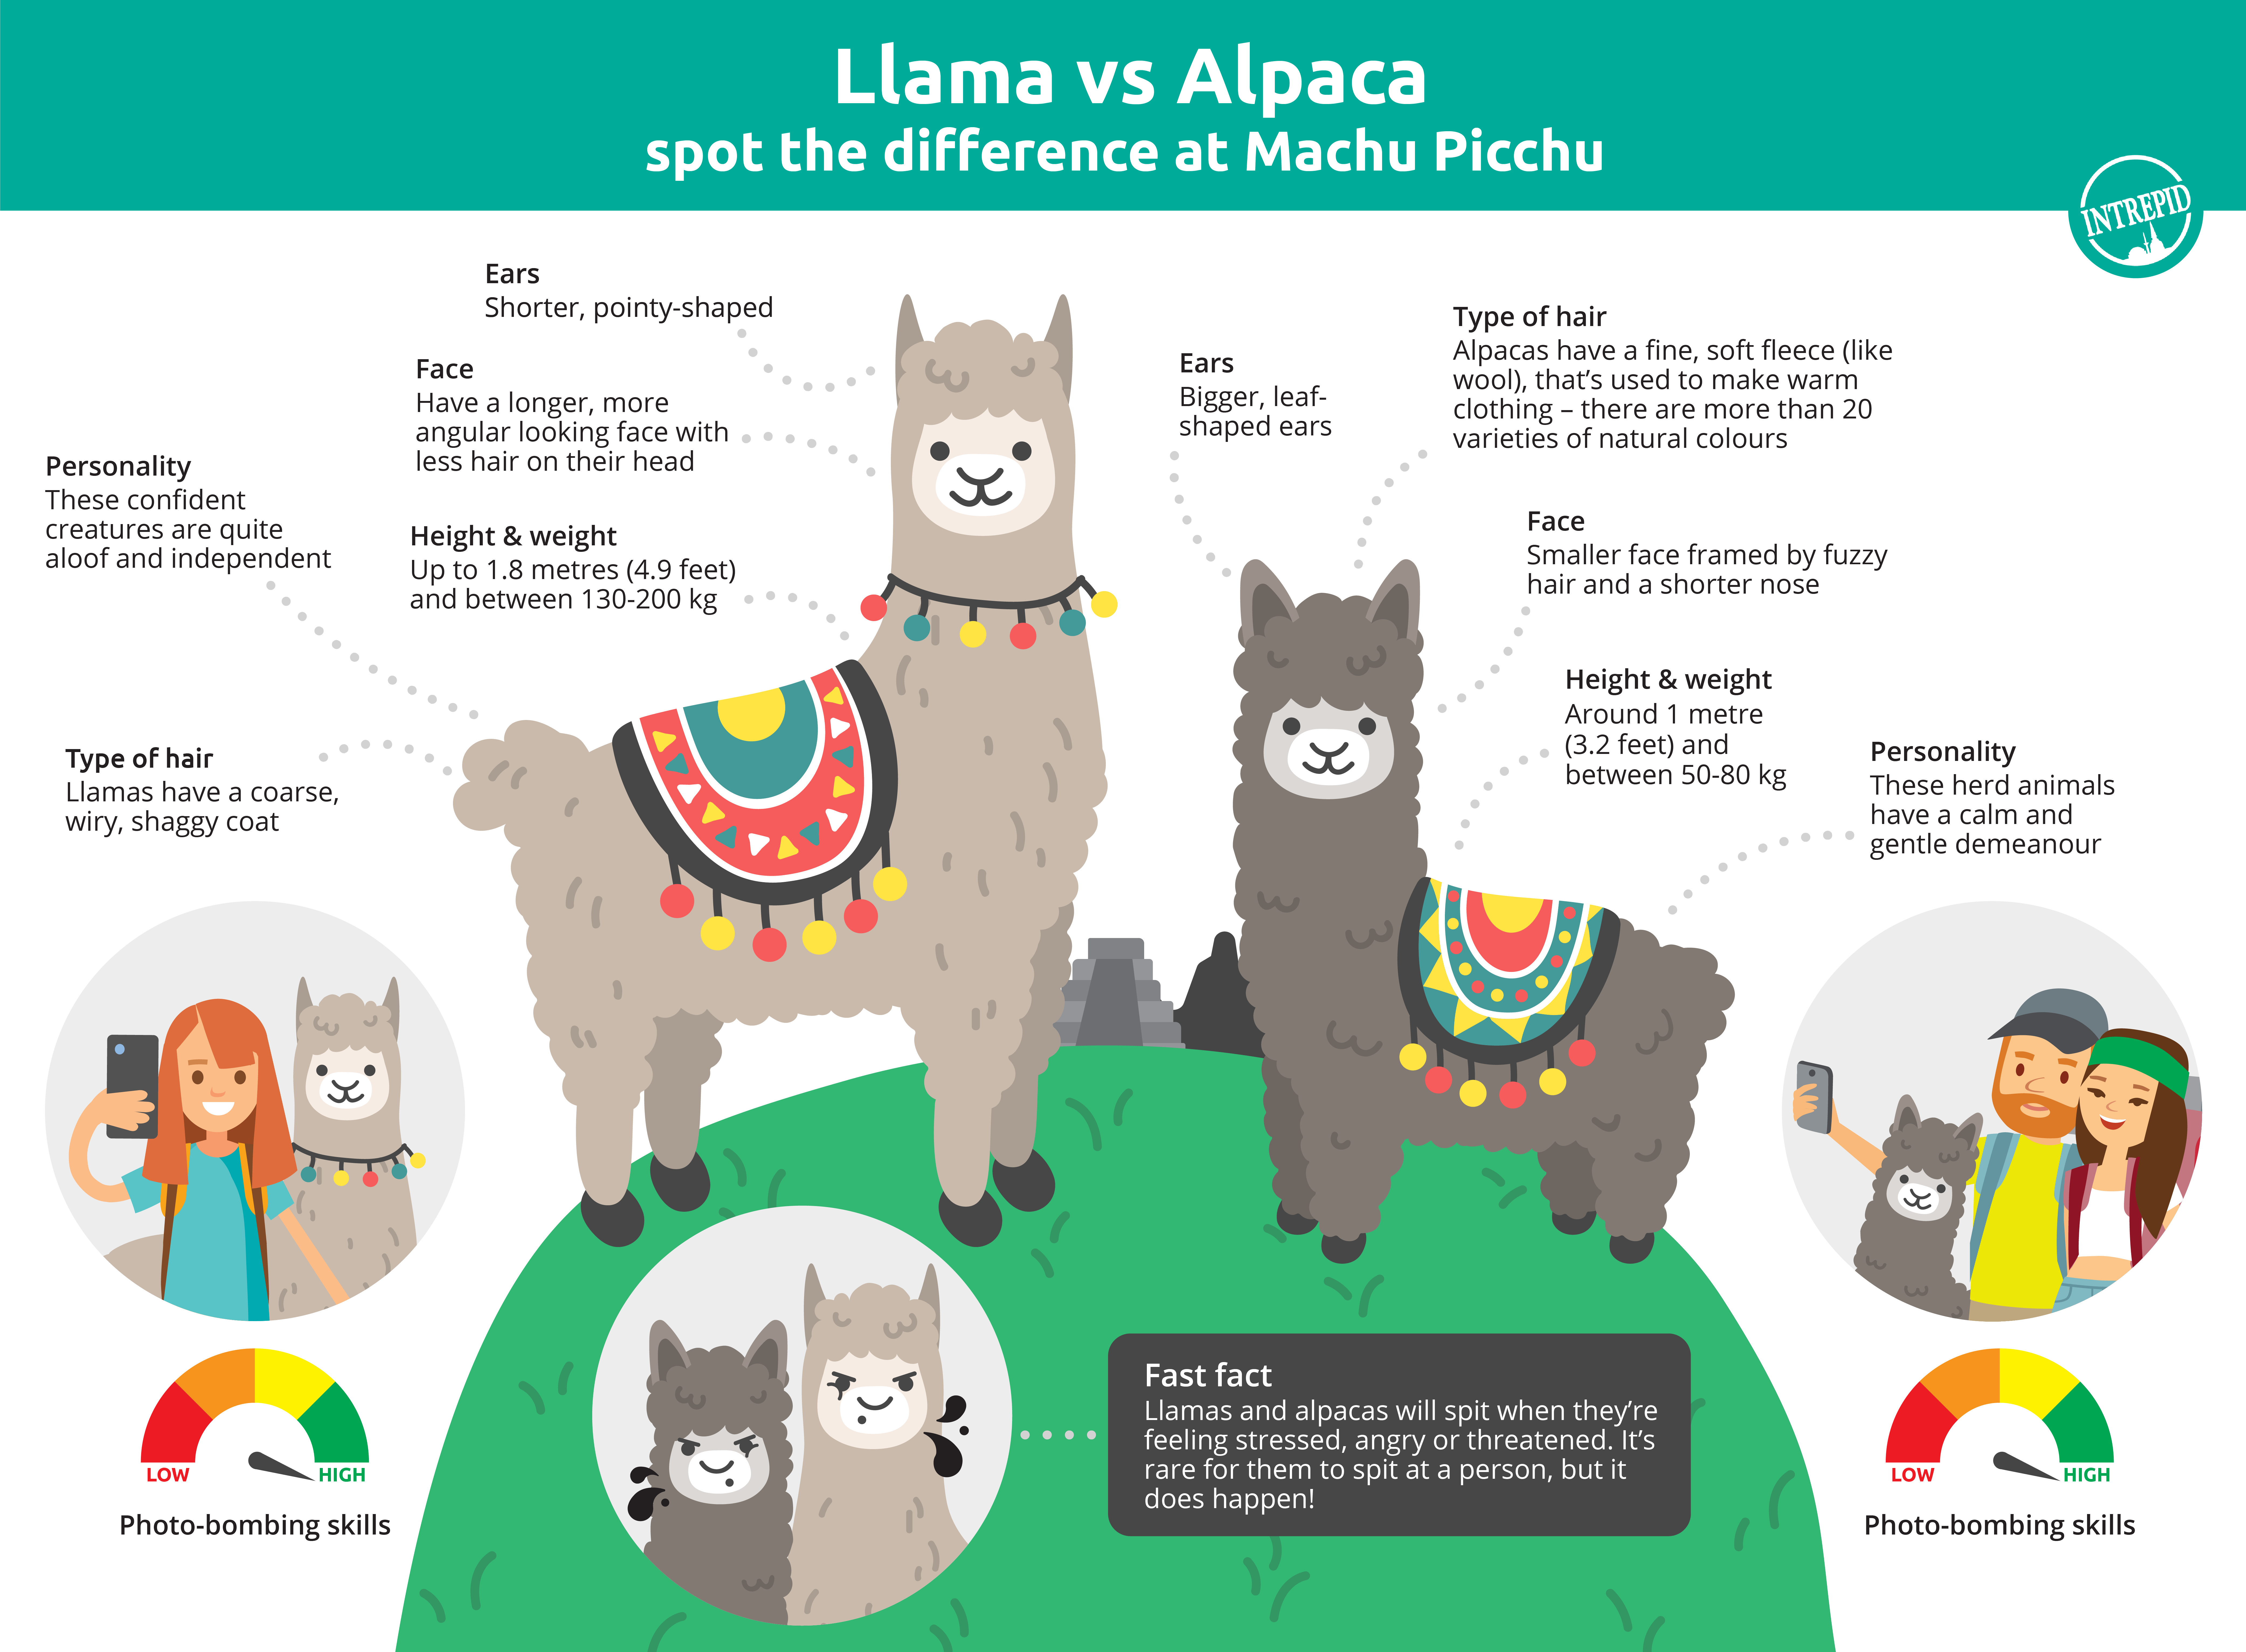 Image outlining the differences between llamas and alpacas